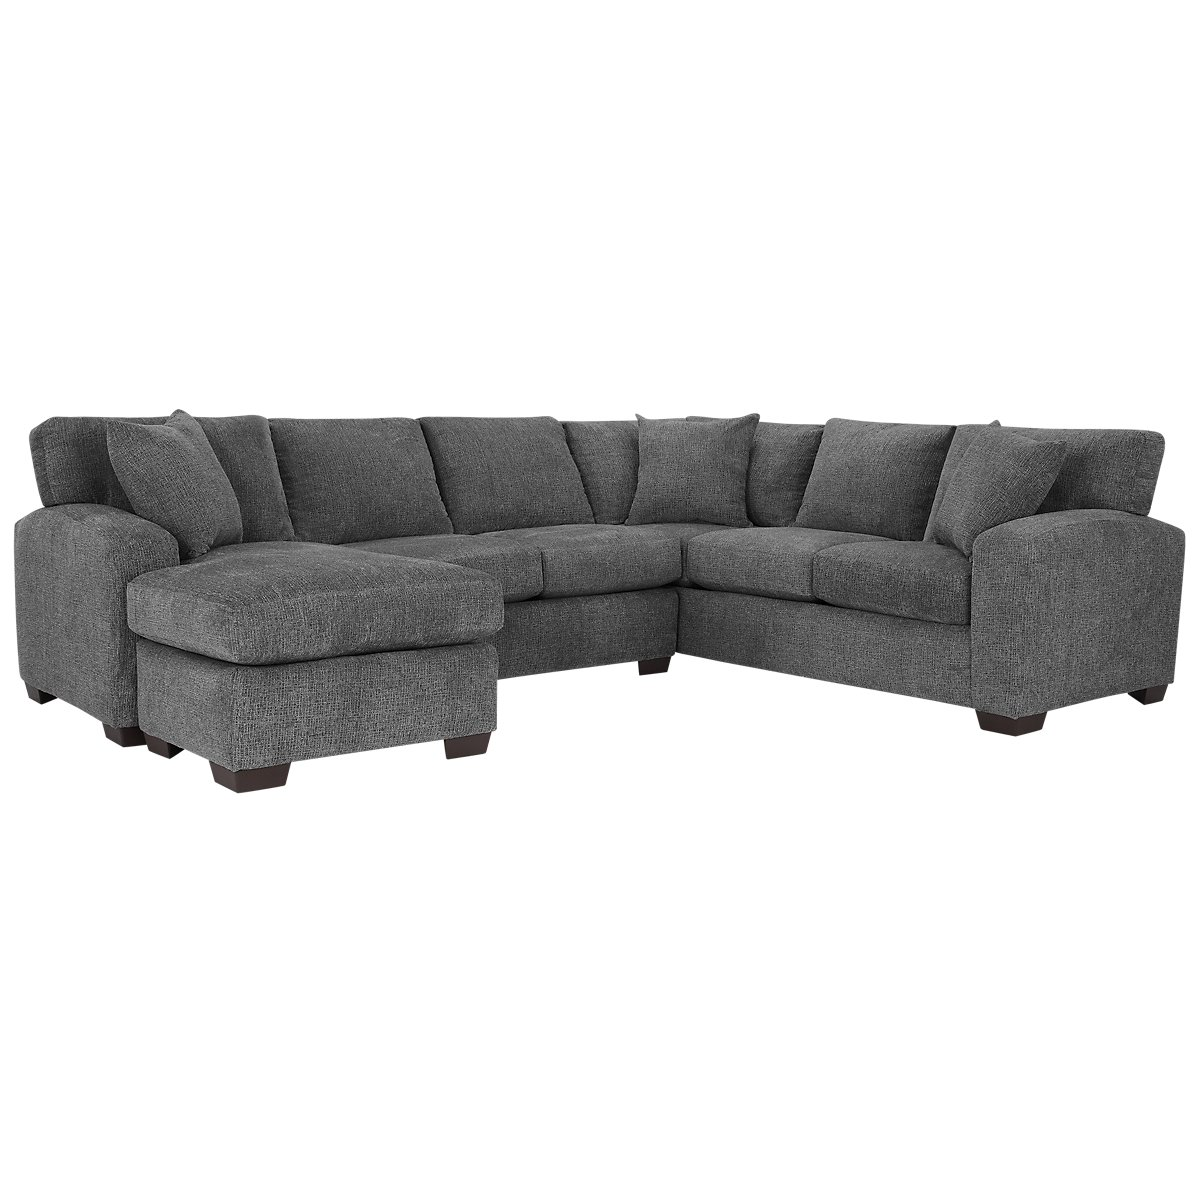 Microfiber sofa chaise catosferanet for Wildon home bailey microfiber sectional sofa with chaise on left